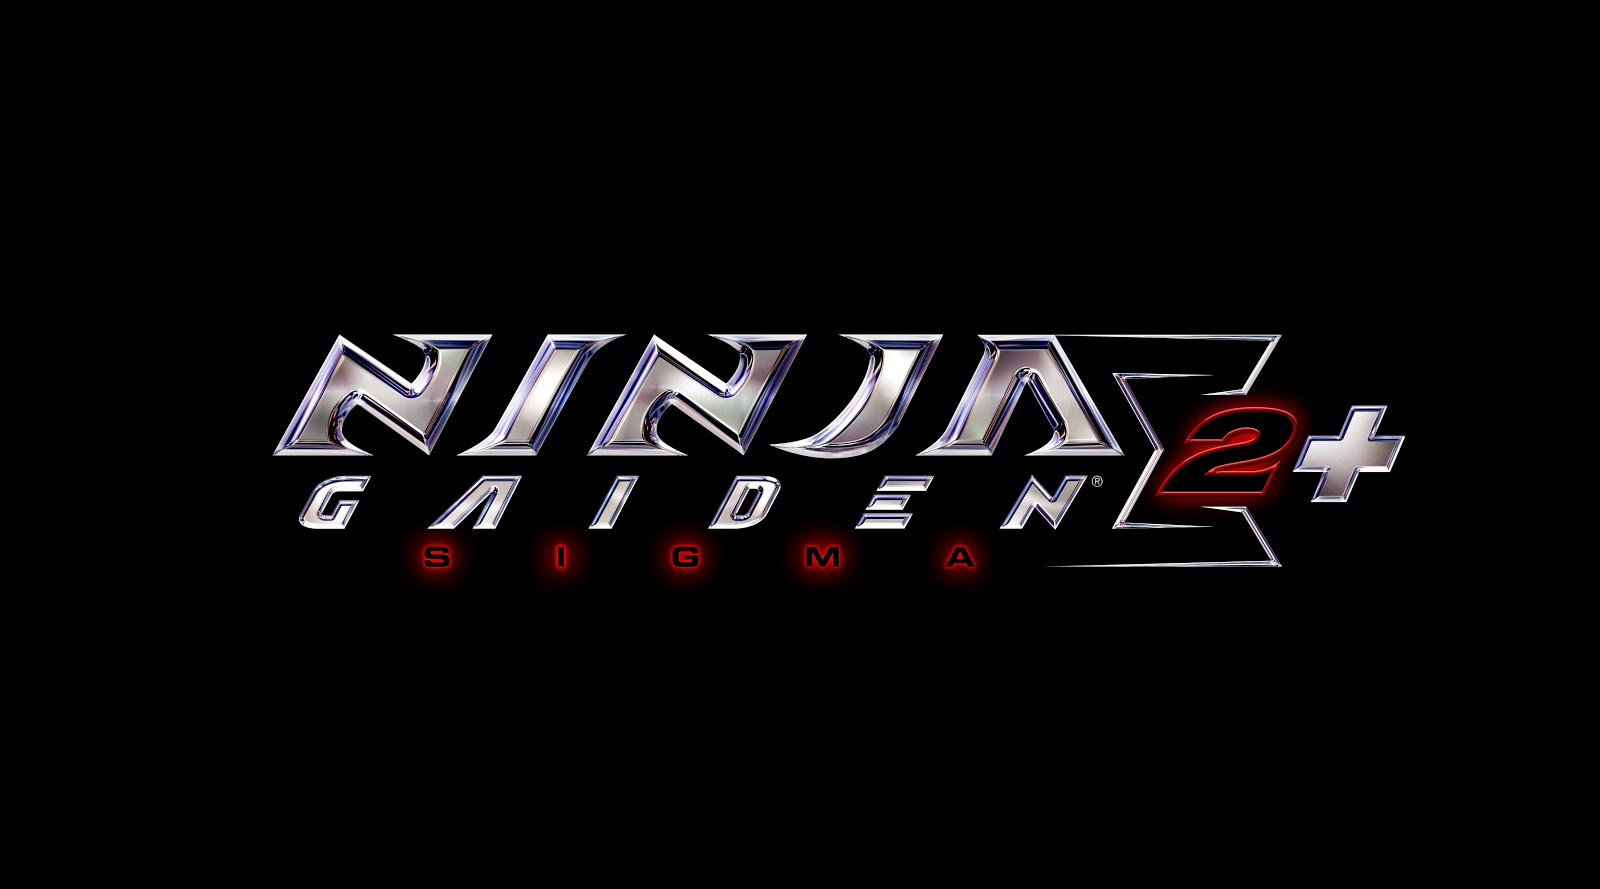 Ninja Gaiden Sigma 2 Plus Announced For Playstation Vita We Know